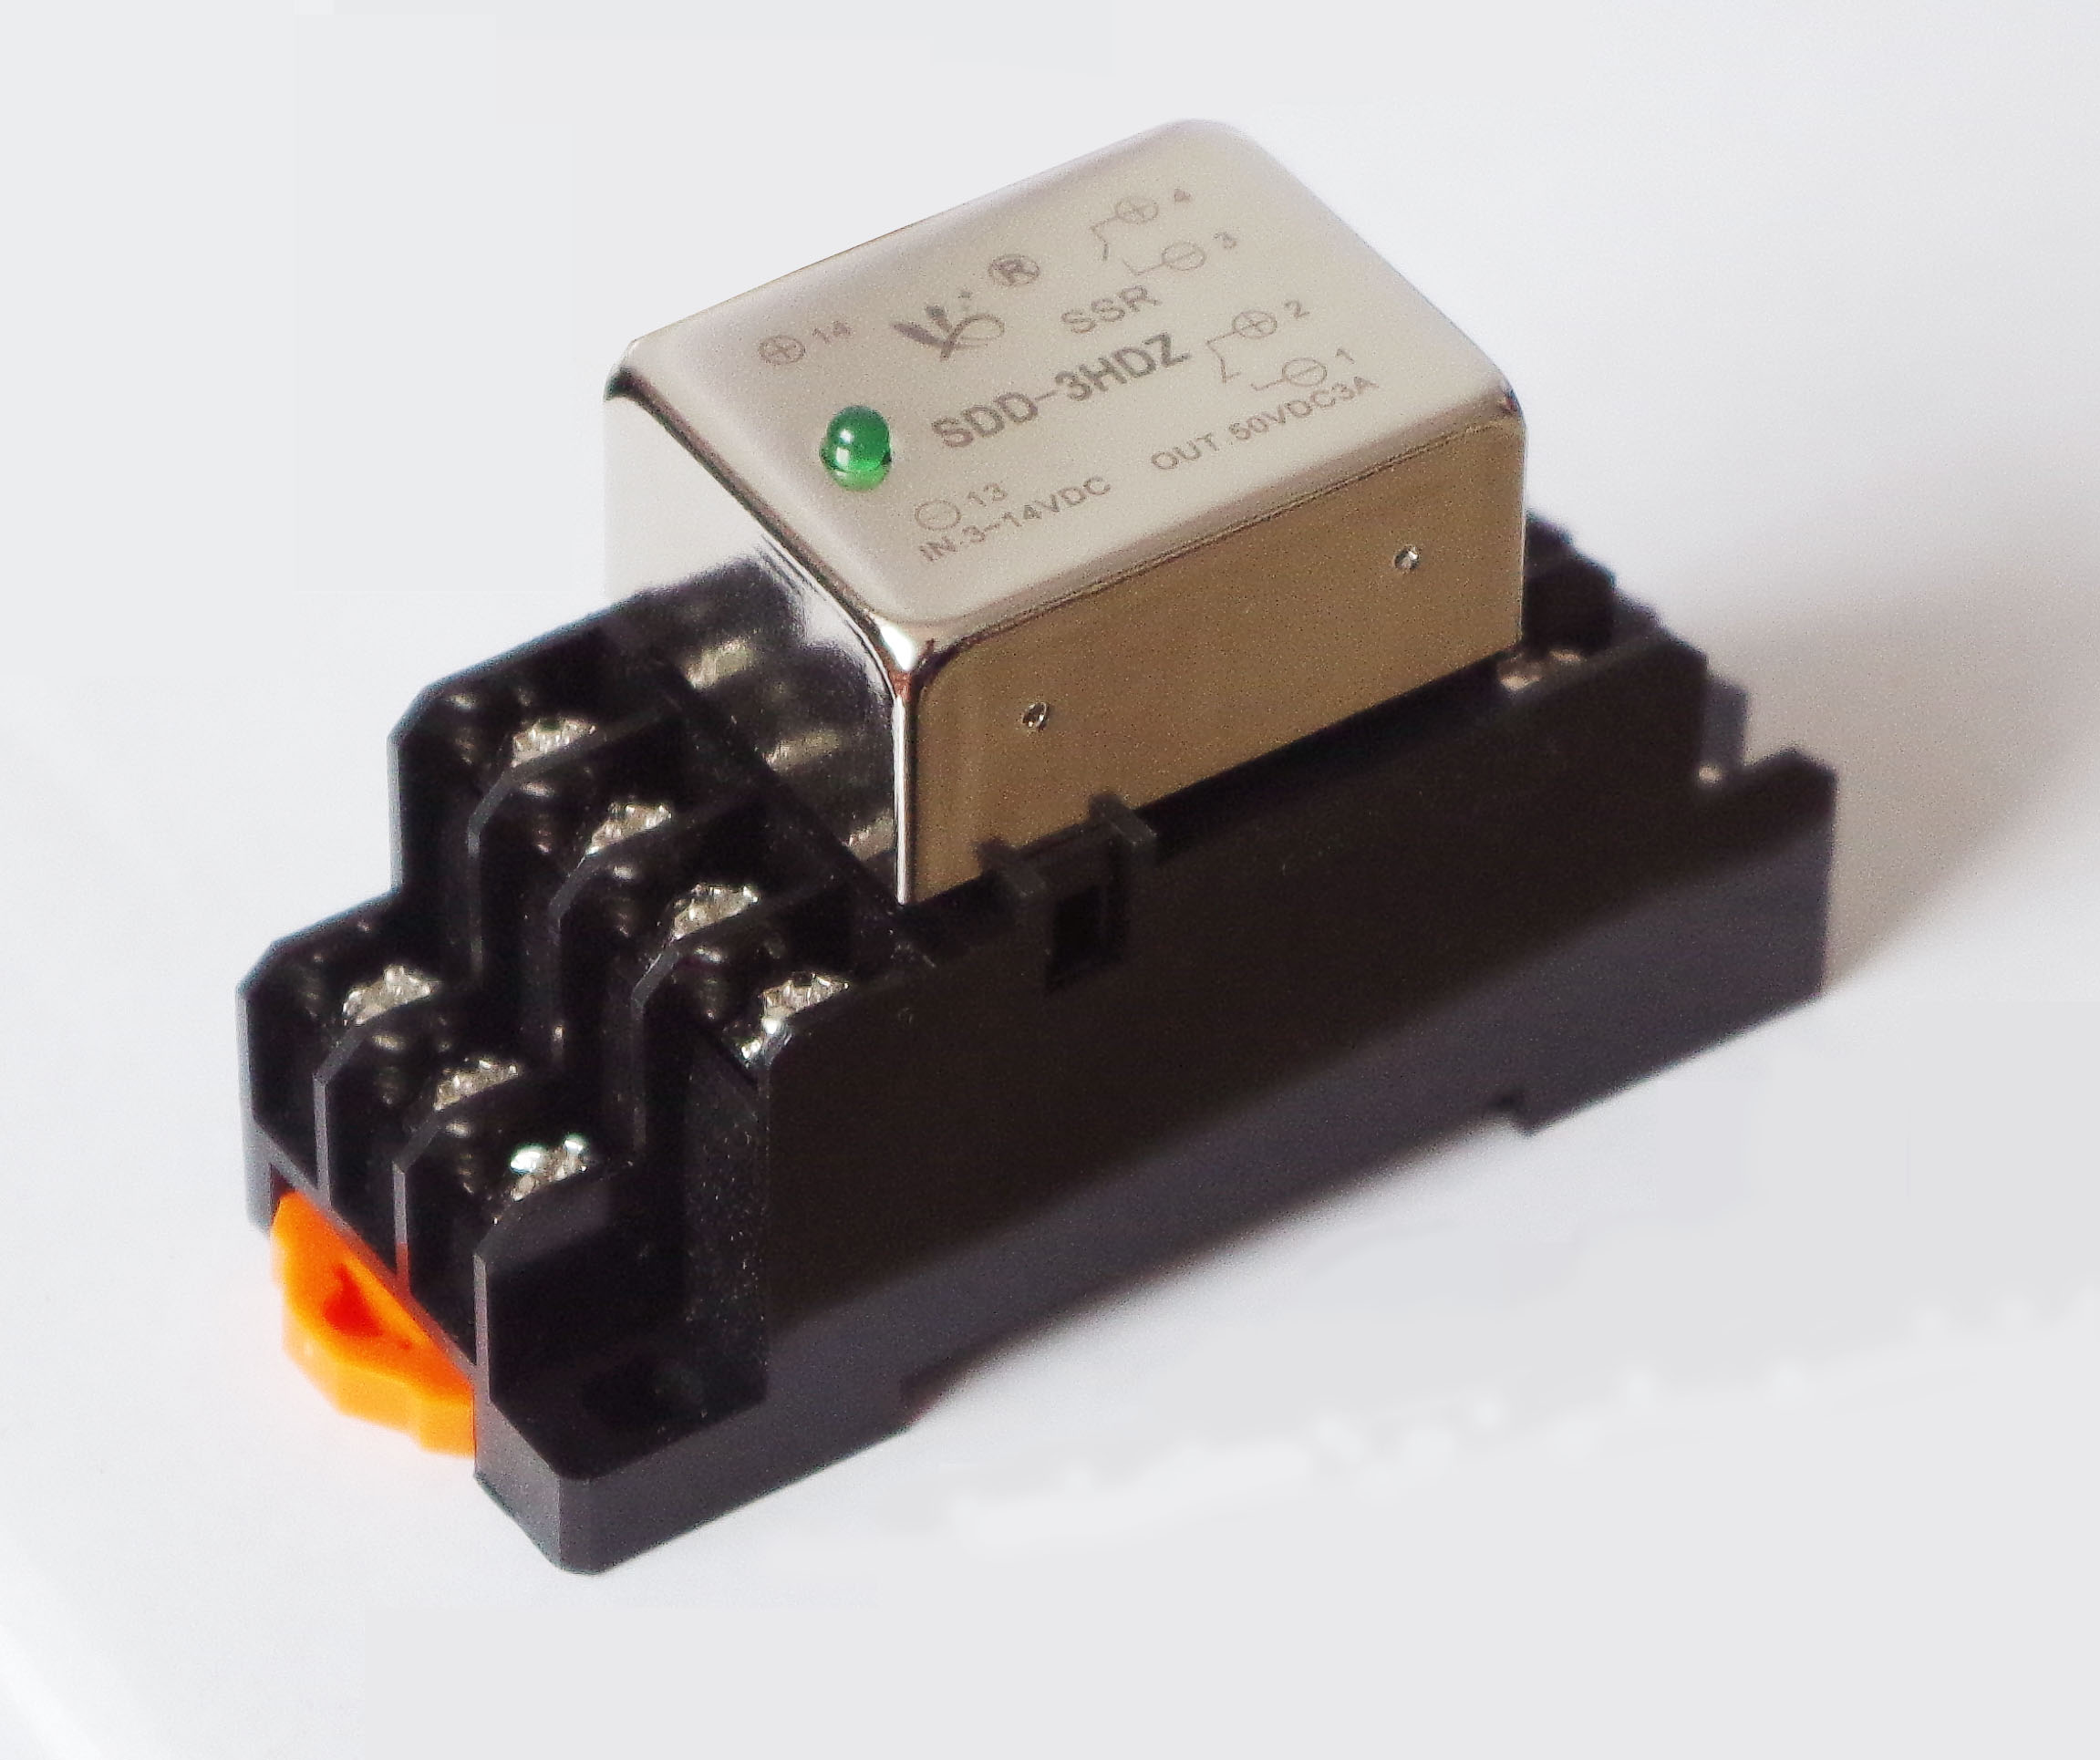 medium resolution of normally open normally closed 3a mini solid state relay sdd 3hdz with indicator sign light rrs switch